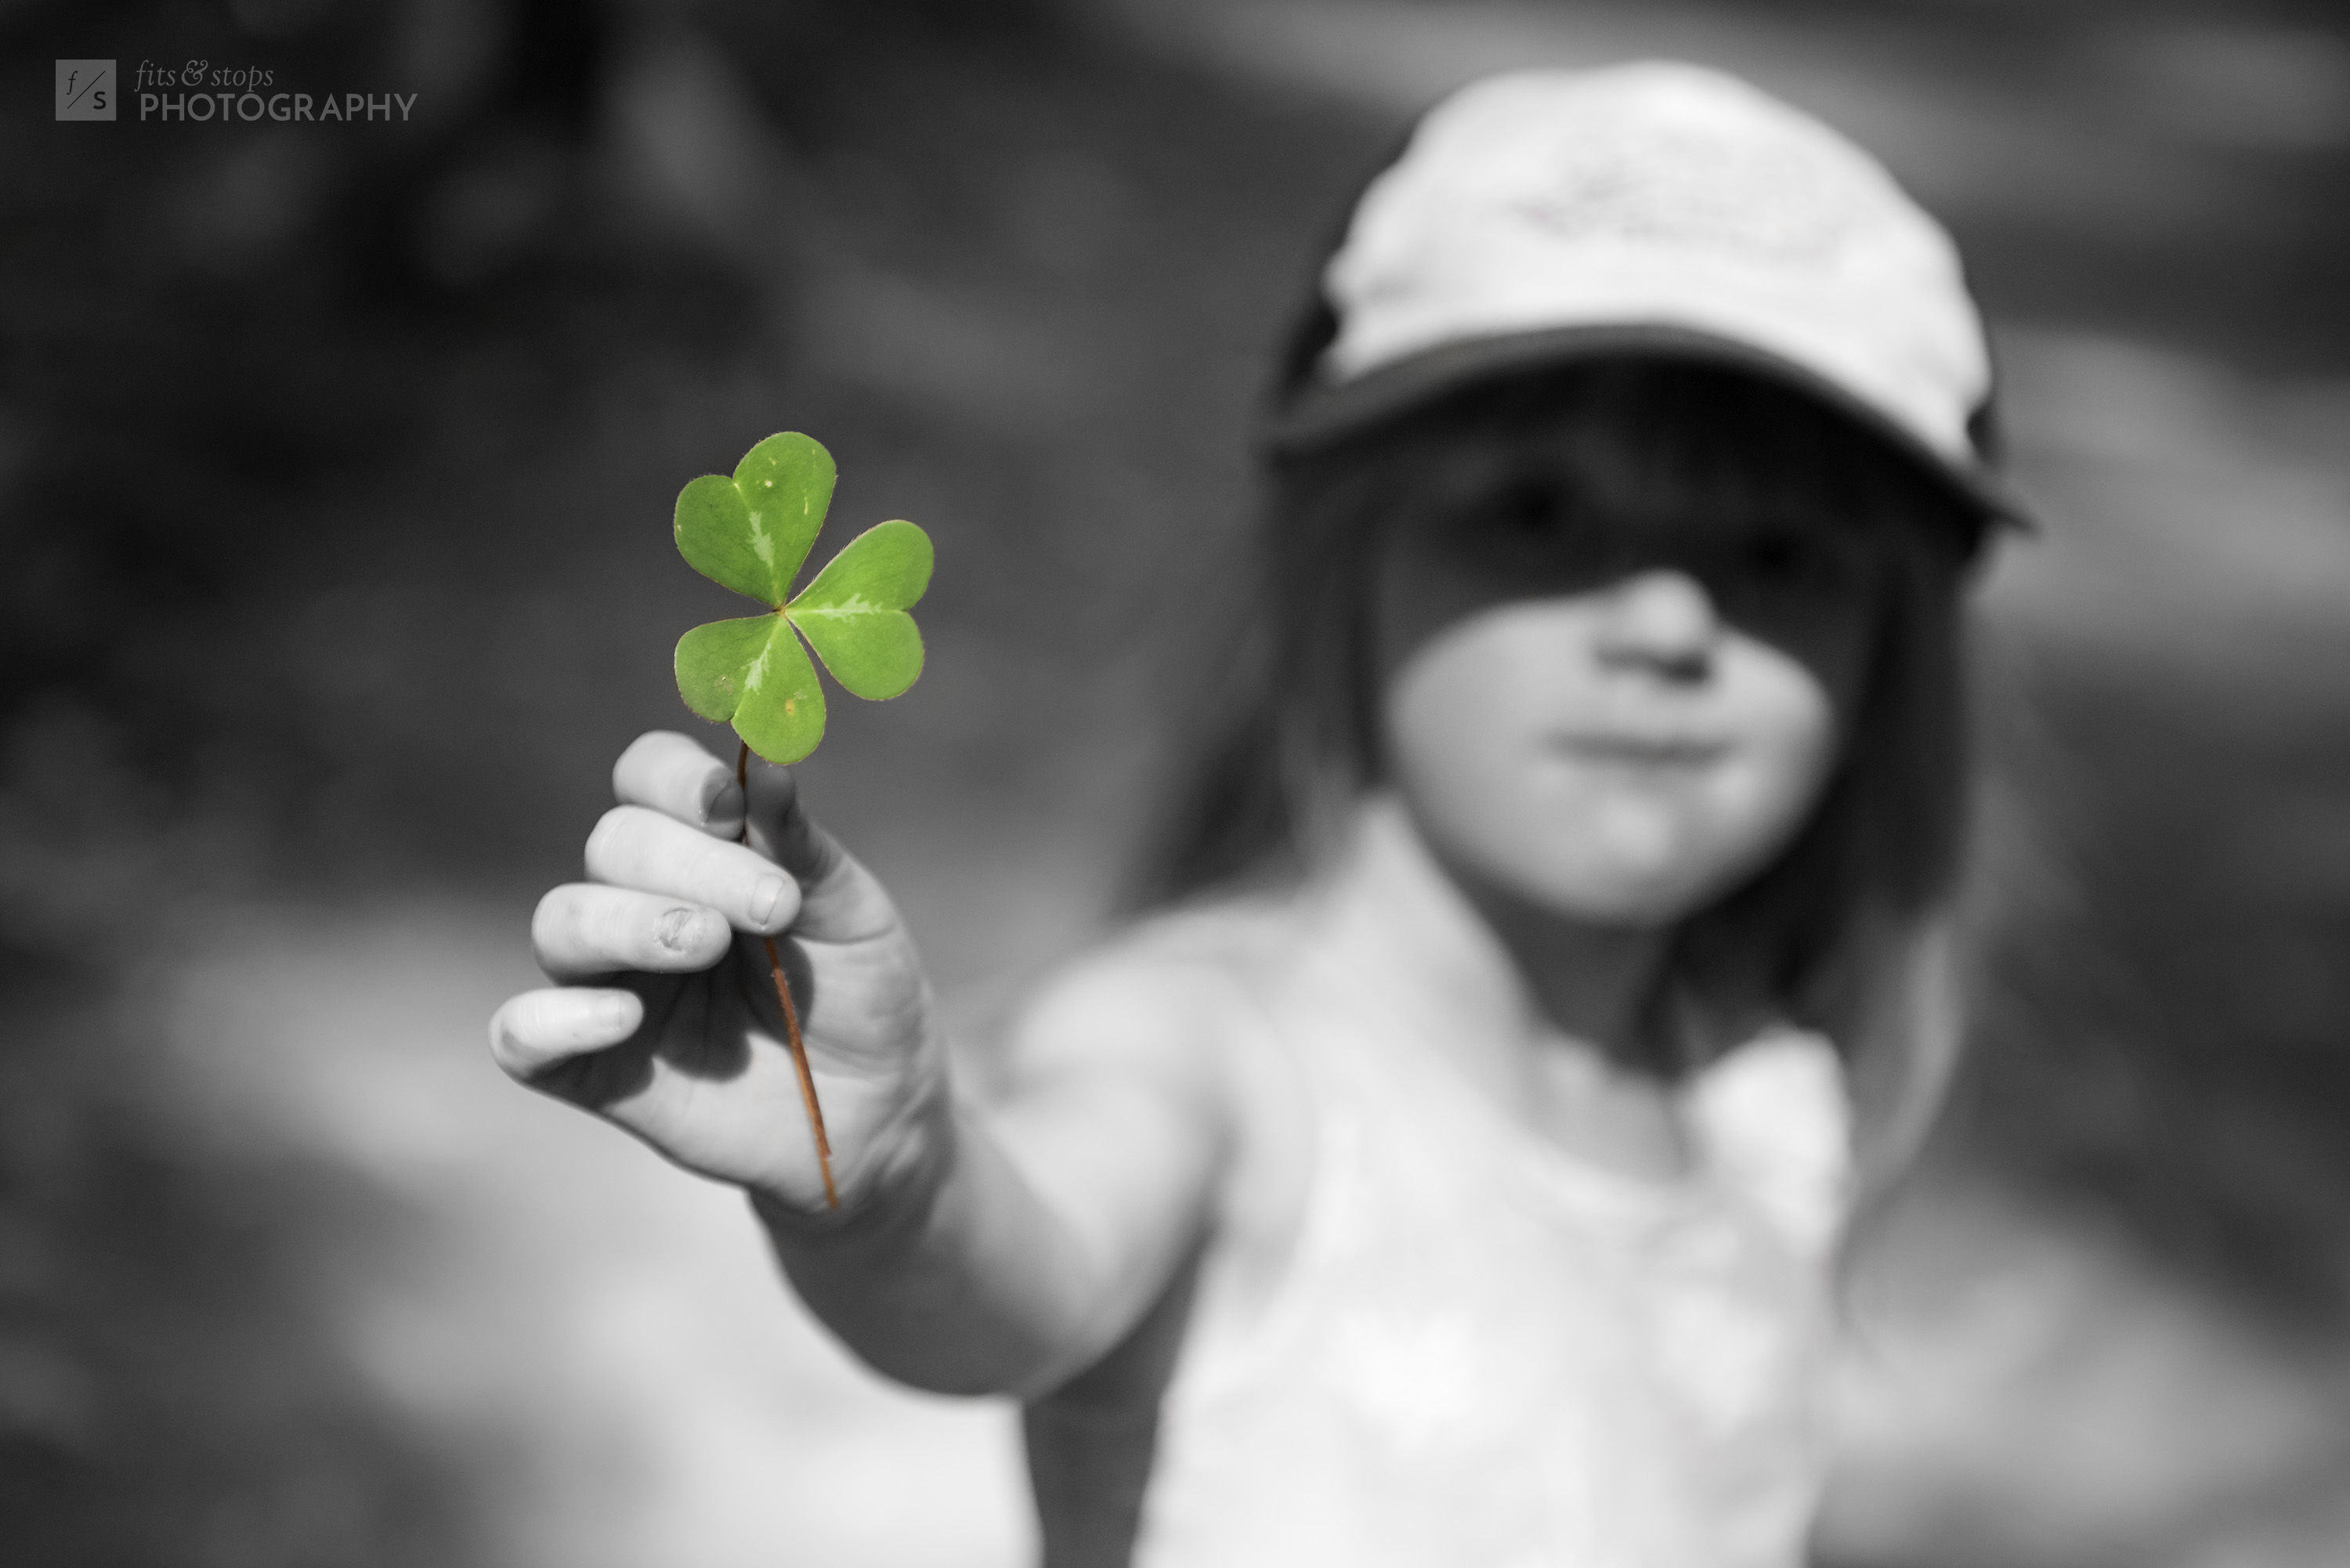 A young girl walks through the forest and discovers a three leaf clover in the trail, holding it up in a shallow DOF photograph. Not lucky, but plenty beautiful.